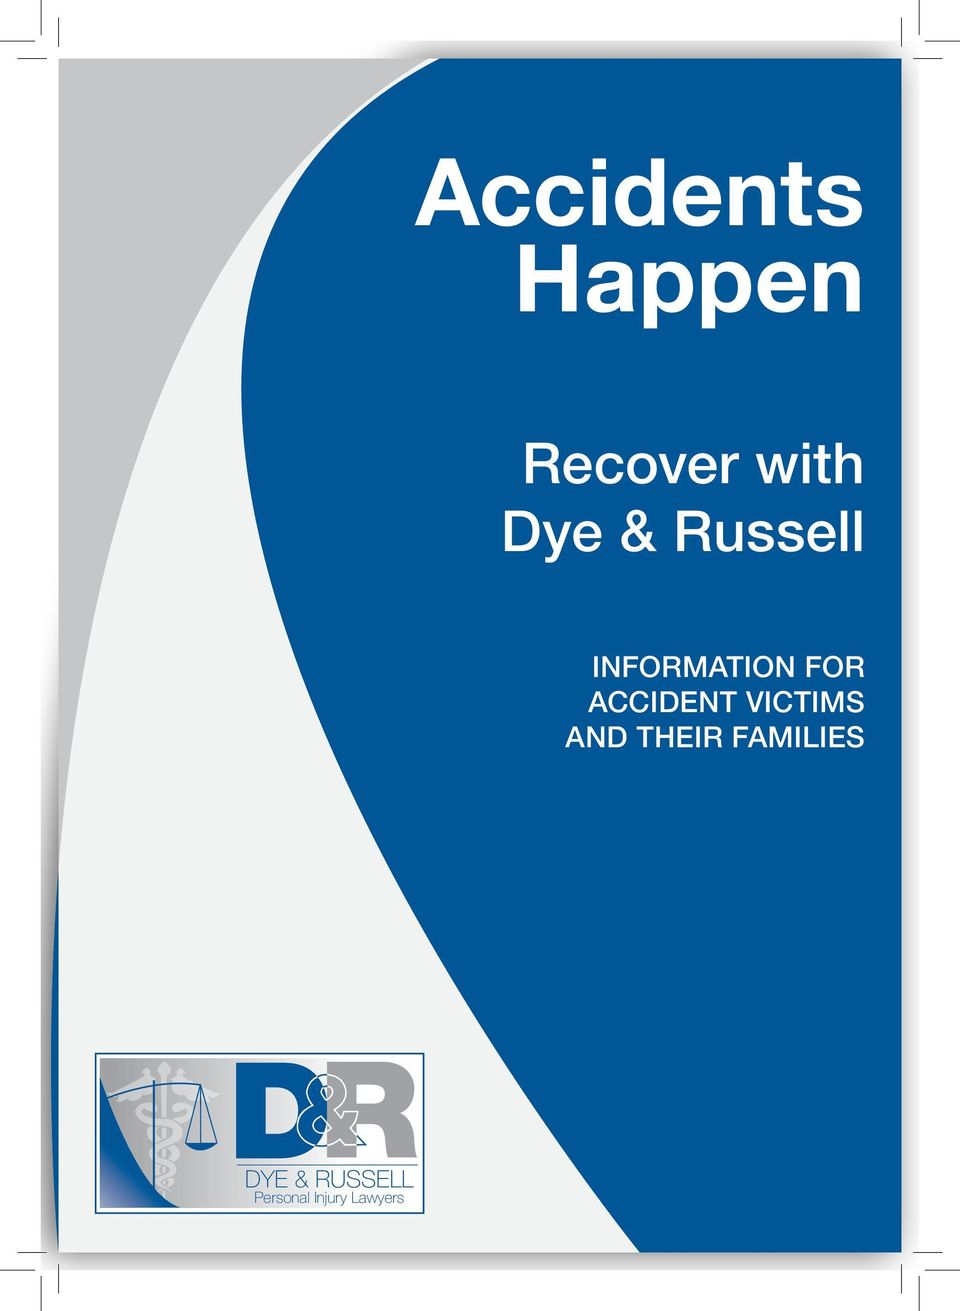 ACCIDENT VICTIMS AND THEIR